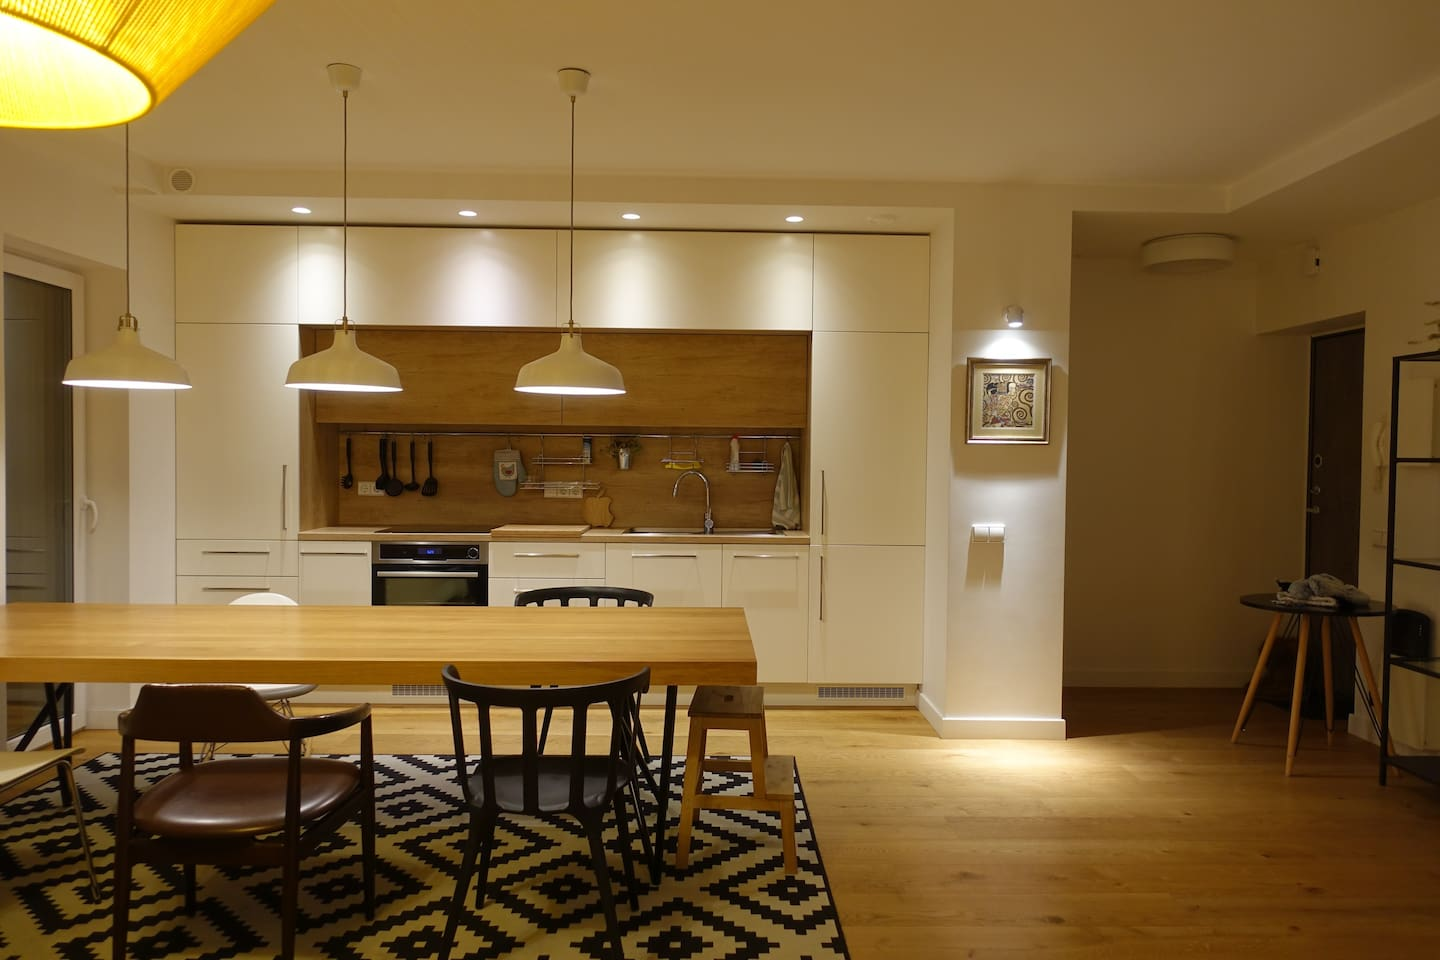 a large table and a well-stocked kitchen when you feel like eating in